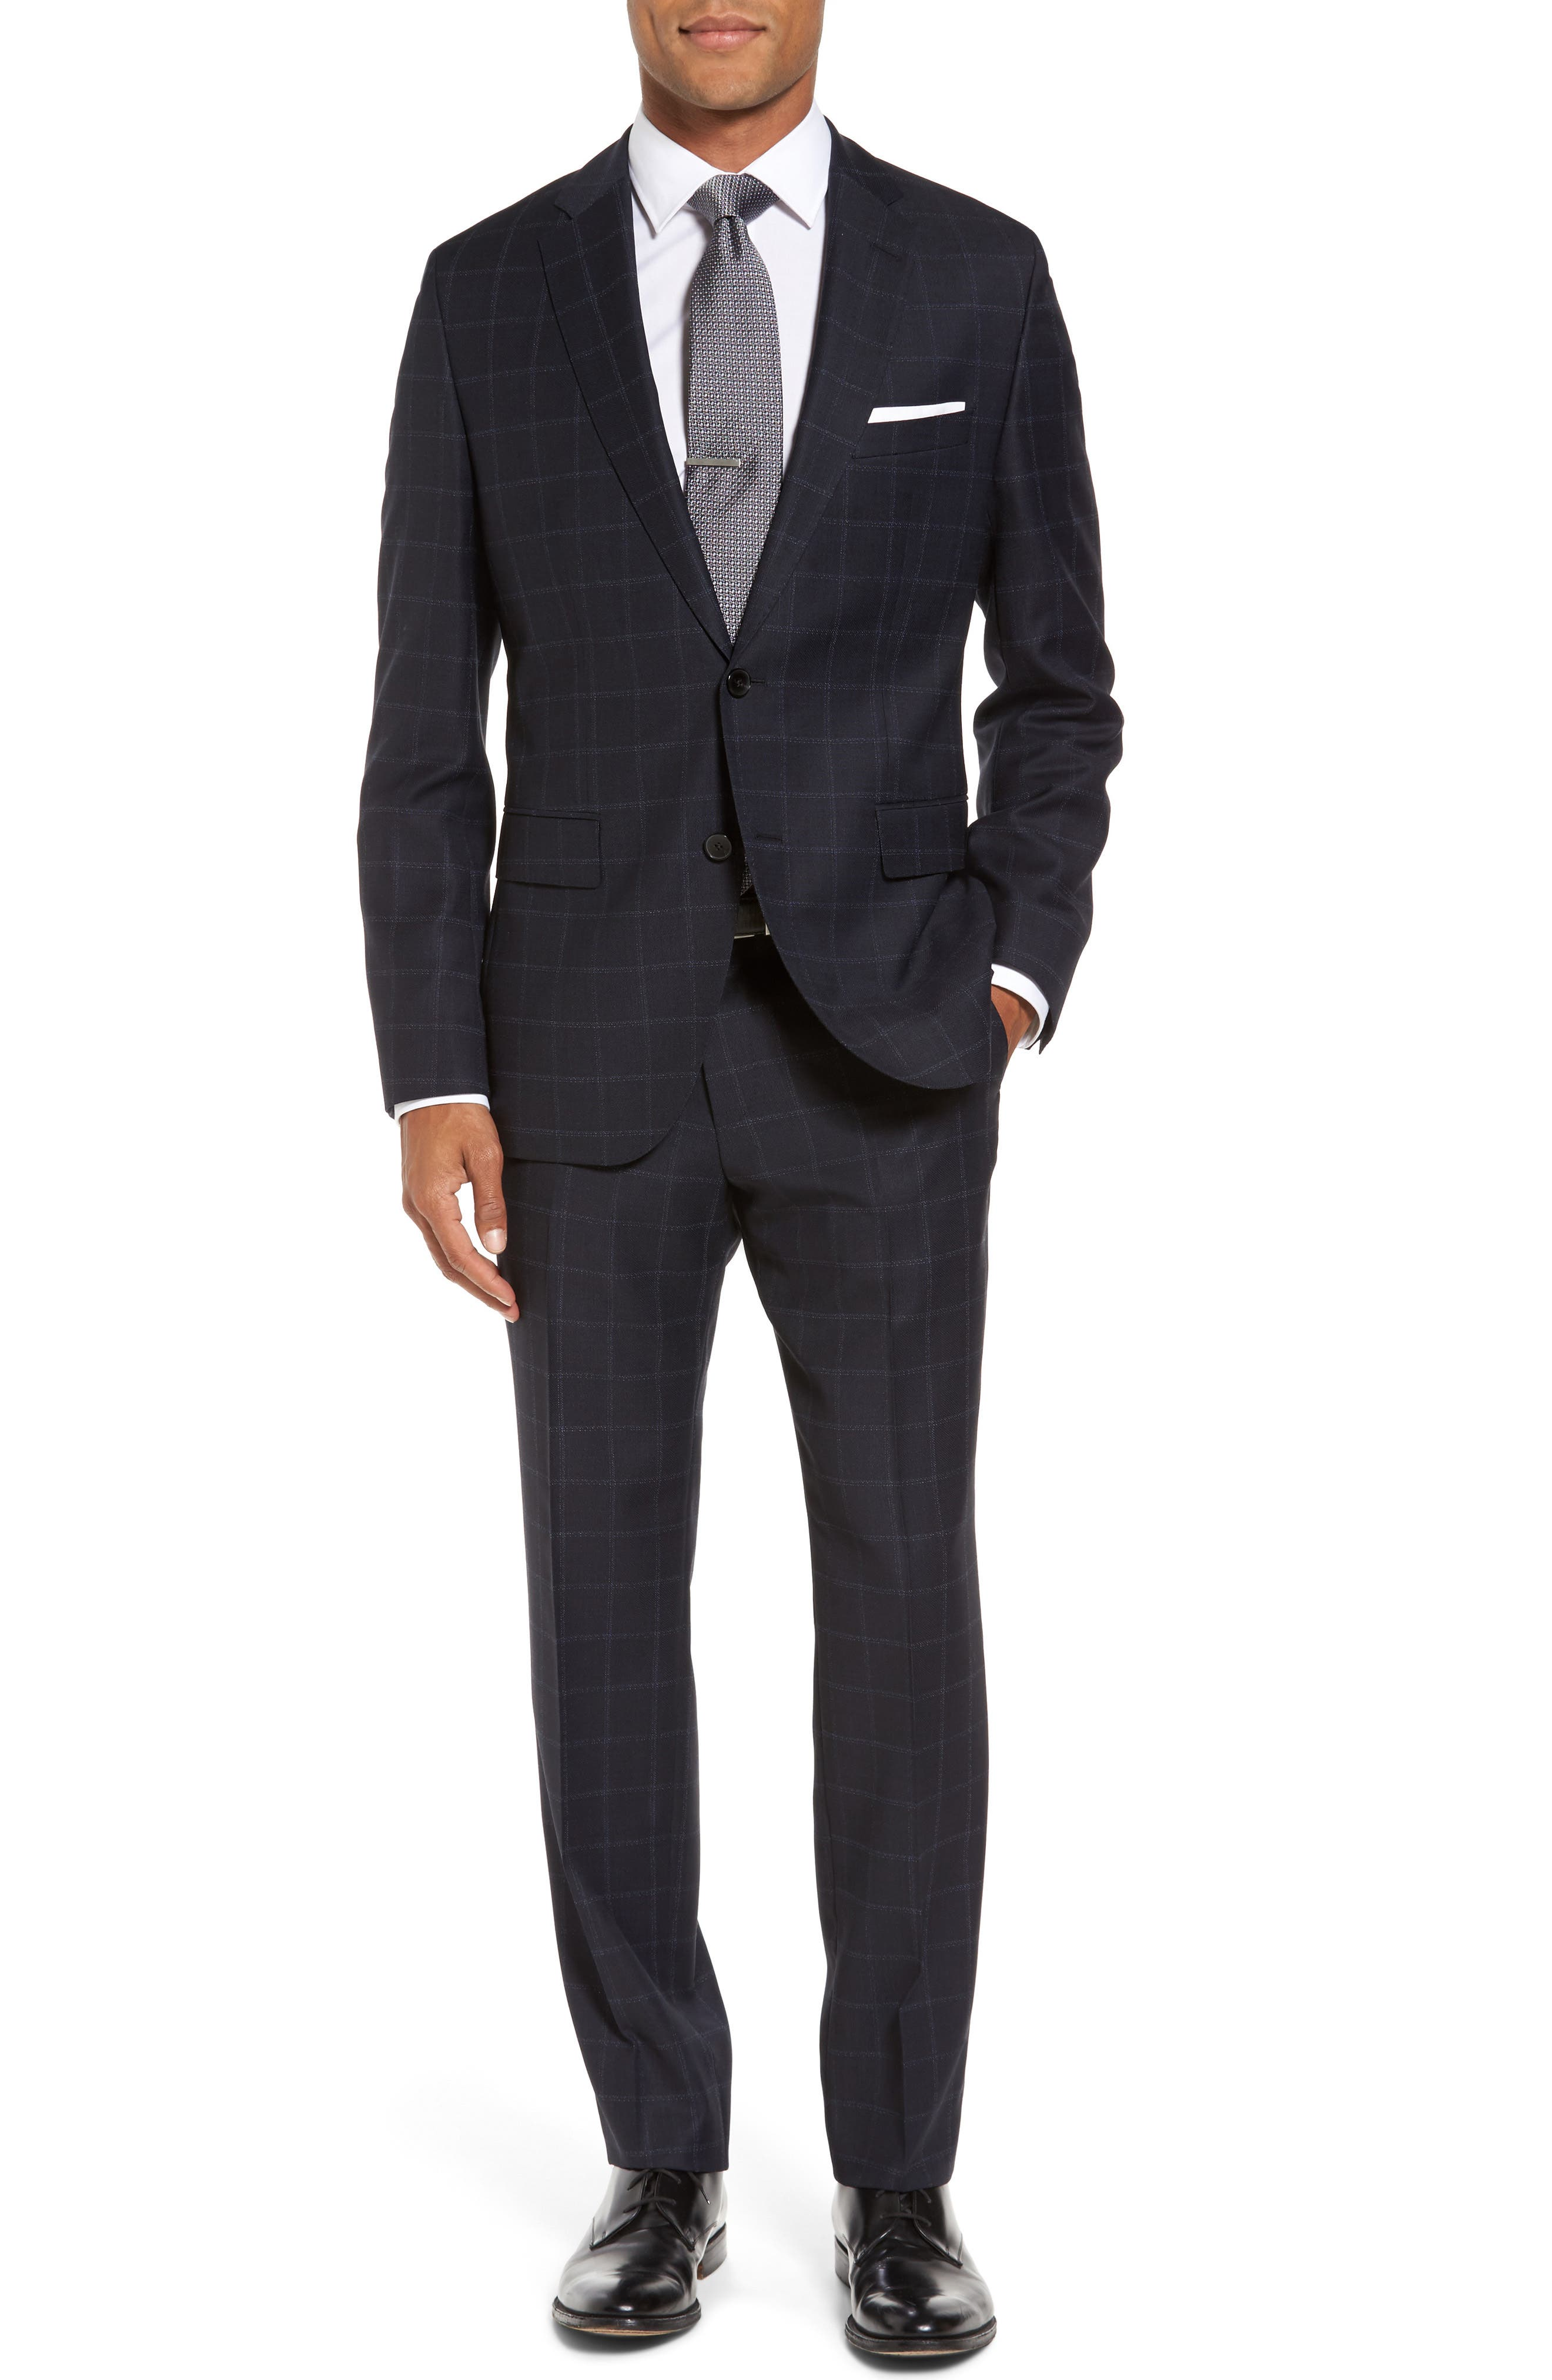 Alternate Image 1 Selected - BOSS Johnstons/Lenon Classic Fit Windowpane Wool Suit